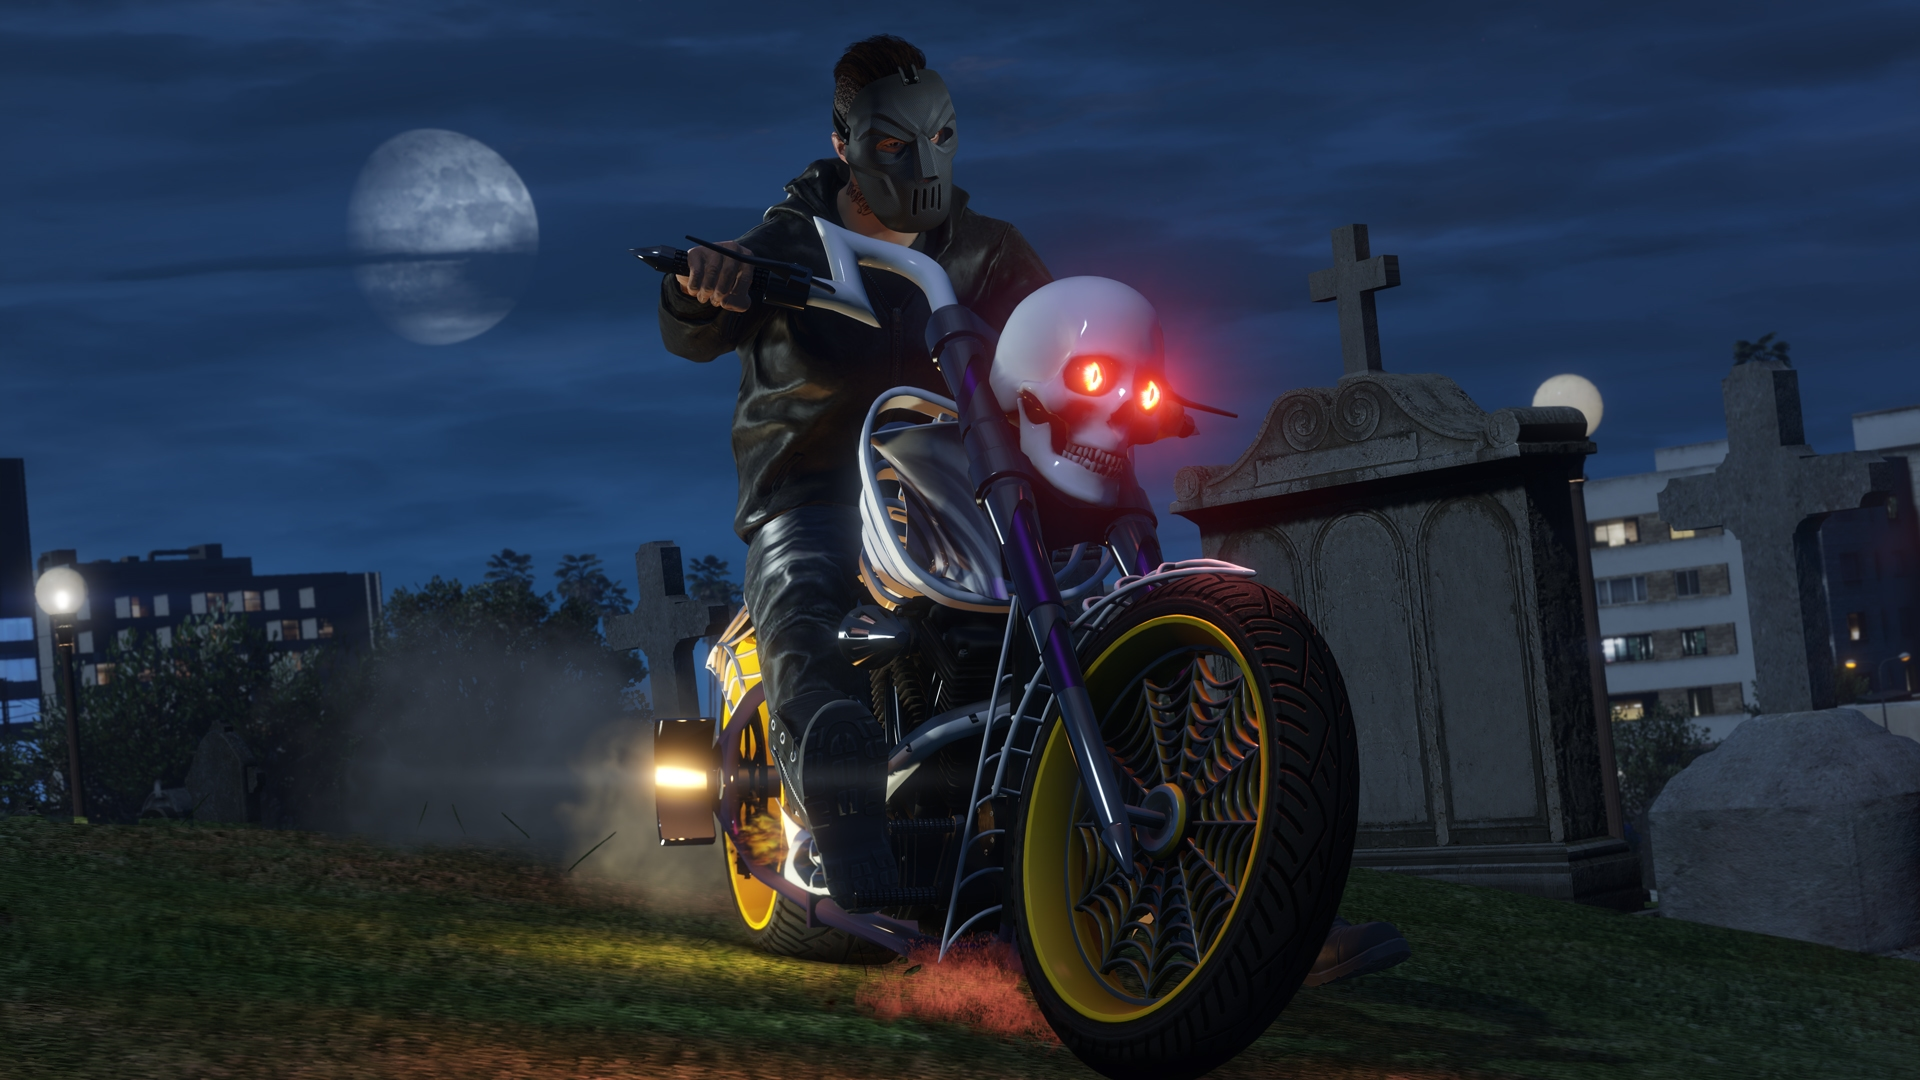 Halloween Rockstar.Gta Online Halloween Specials Anniversary Bonuses New Vehicles